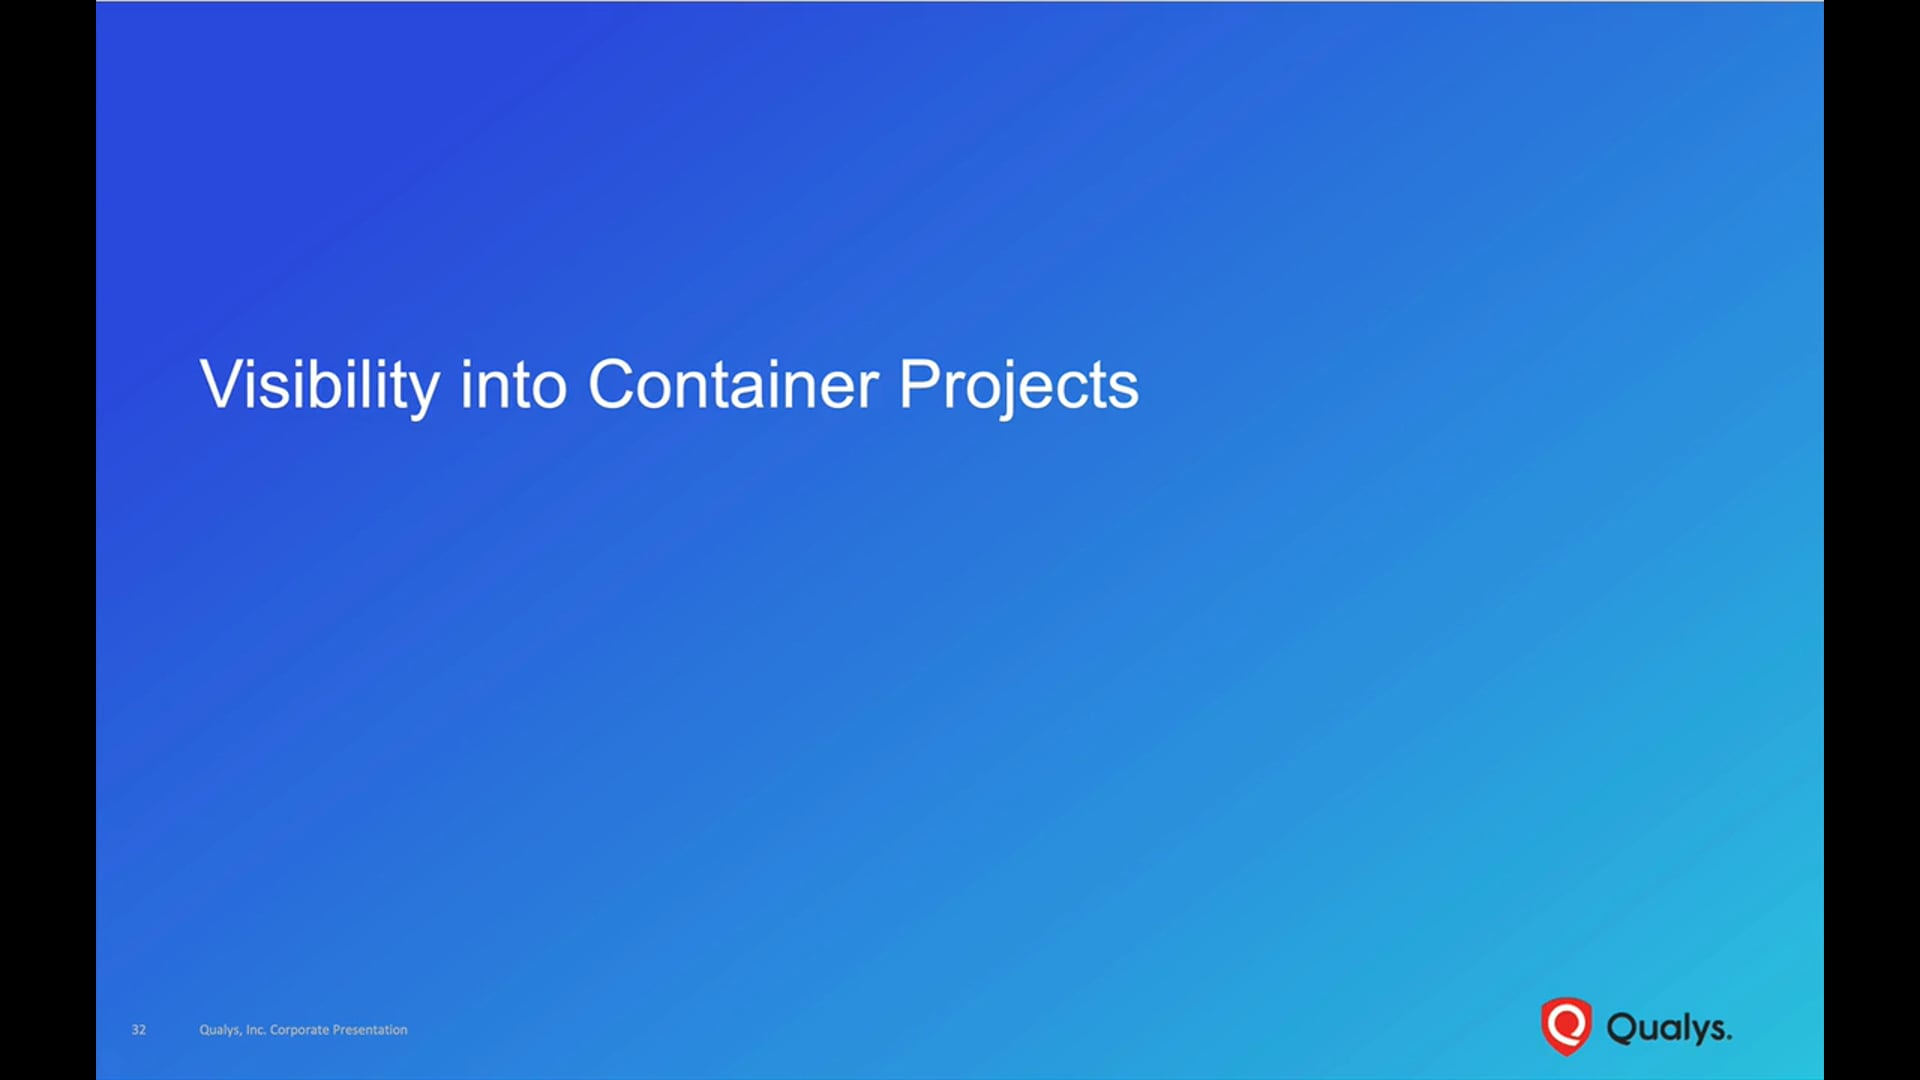 Visibility into Container Projects